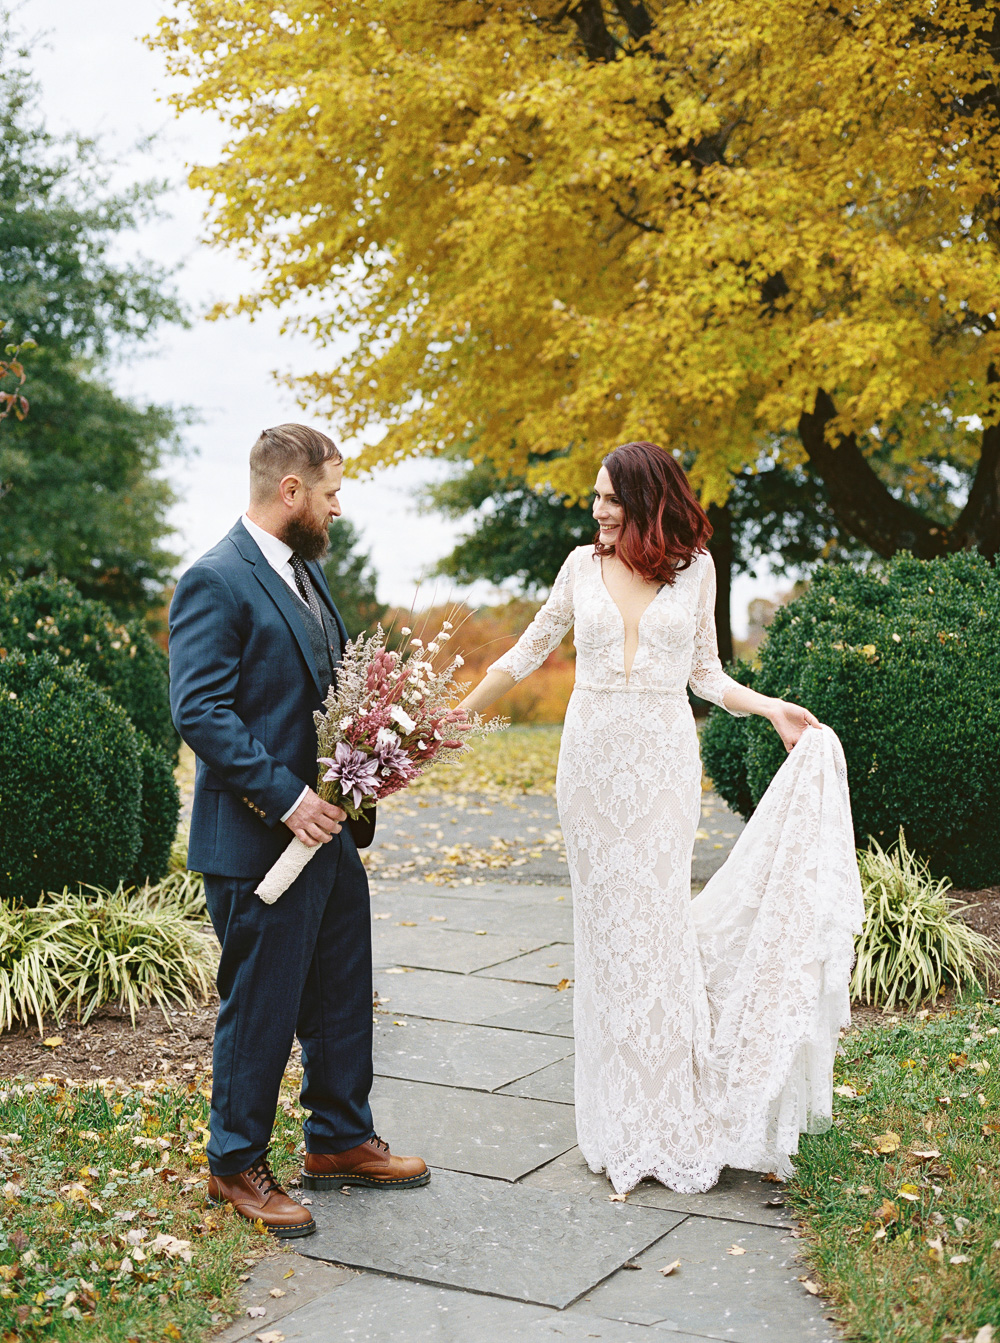 Michelle-whitley-bride-and-groom-portraits